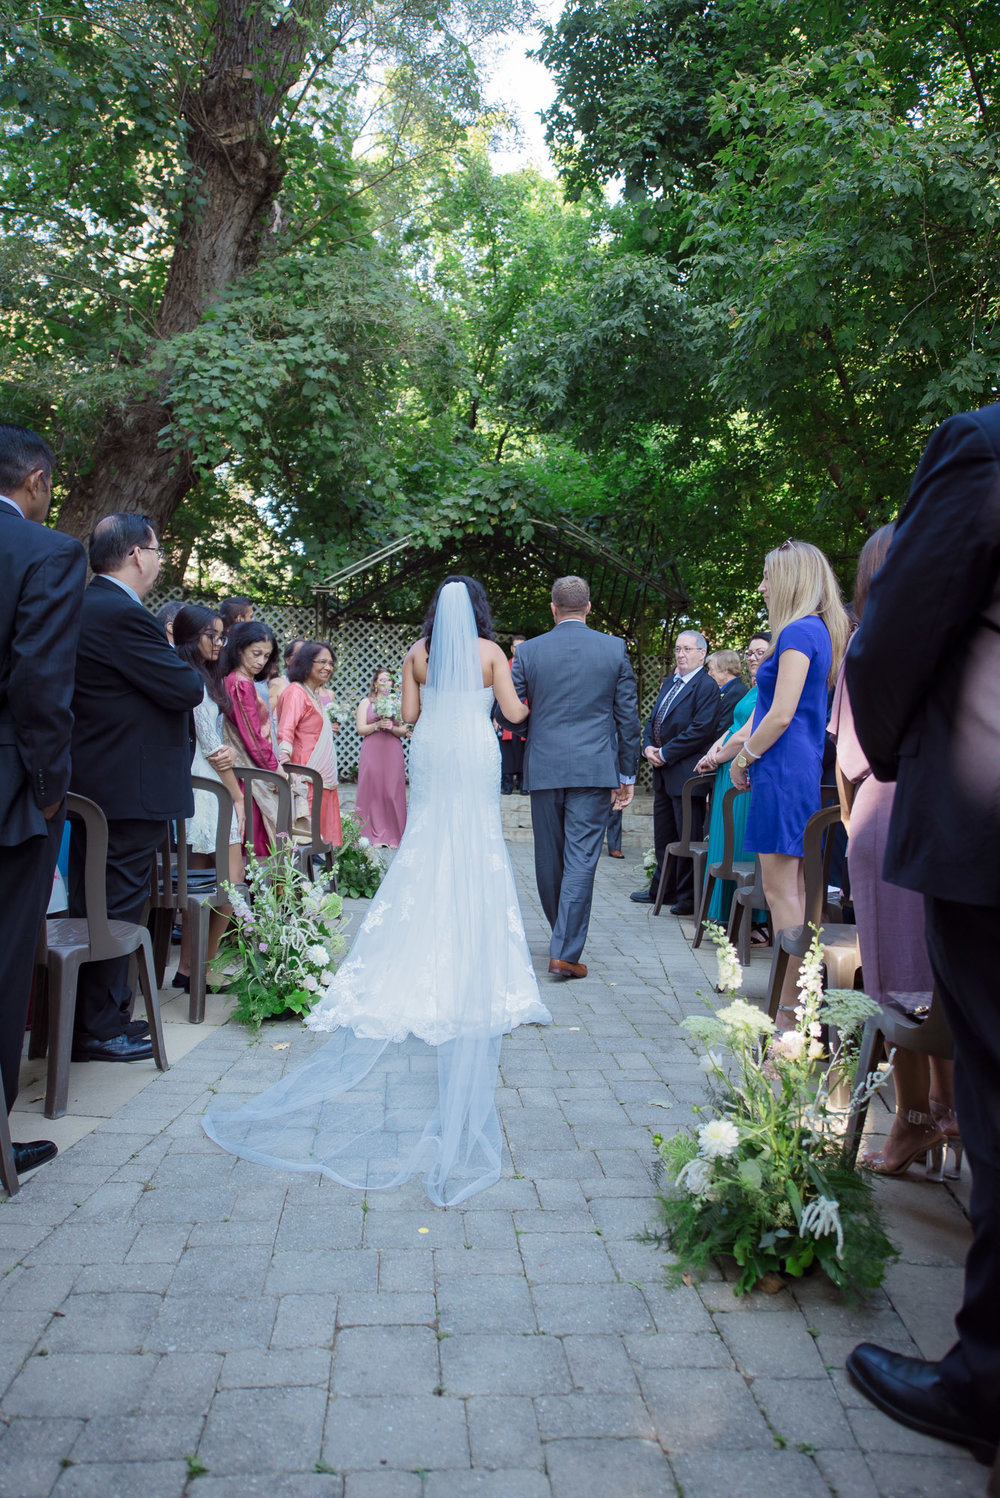 FM&CO.-Michelle&Jimmy-Ceremony-294.jpg